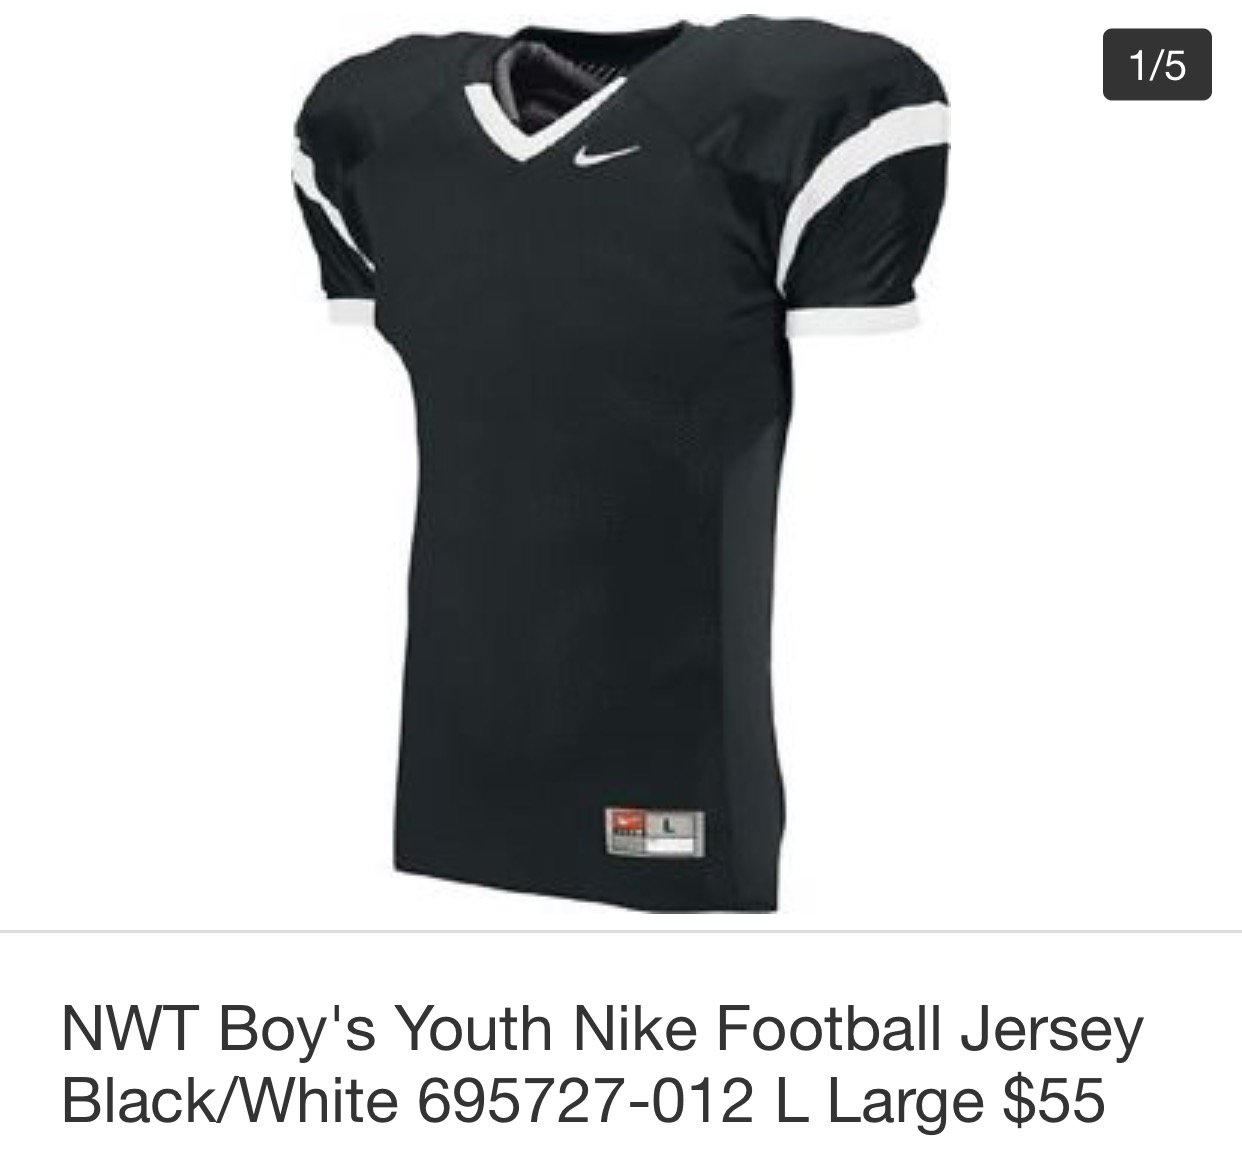 separation shoes 925d8 7c8ed Amazon.com: Nike NWT Boy's Youth Football Jersey Black/White ...